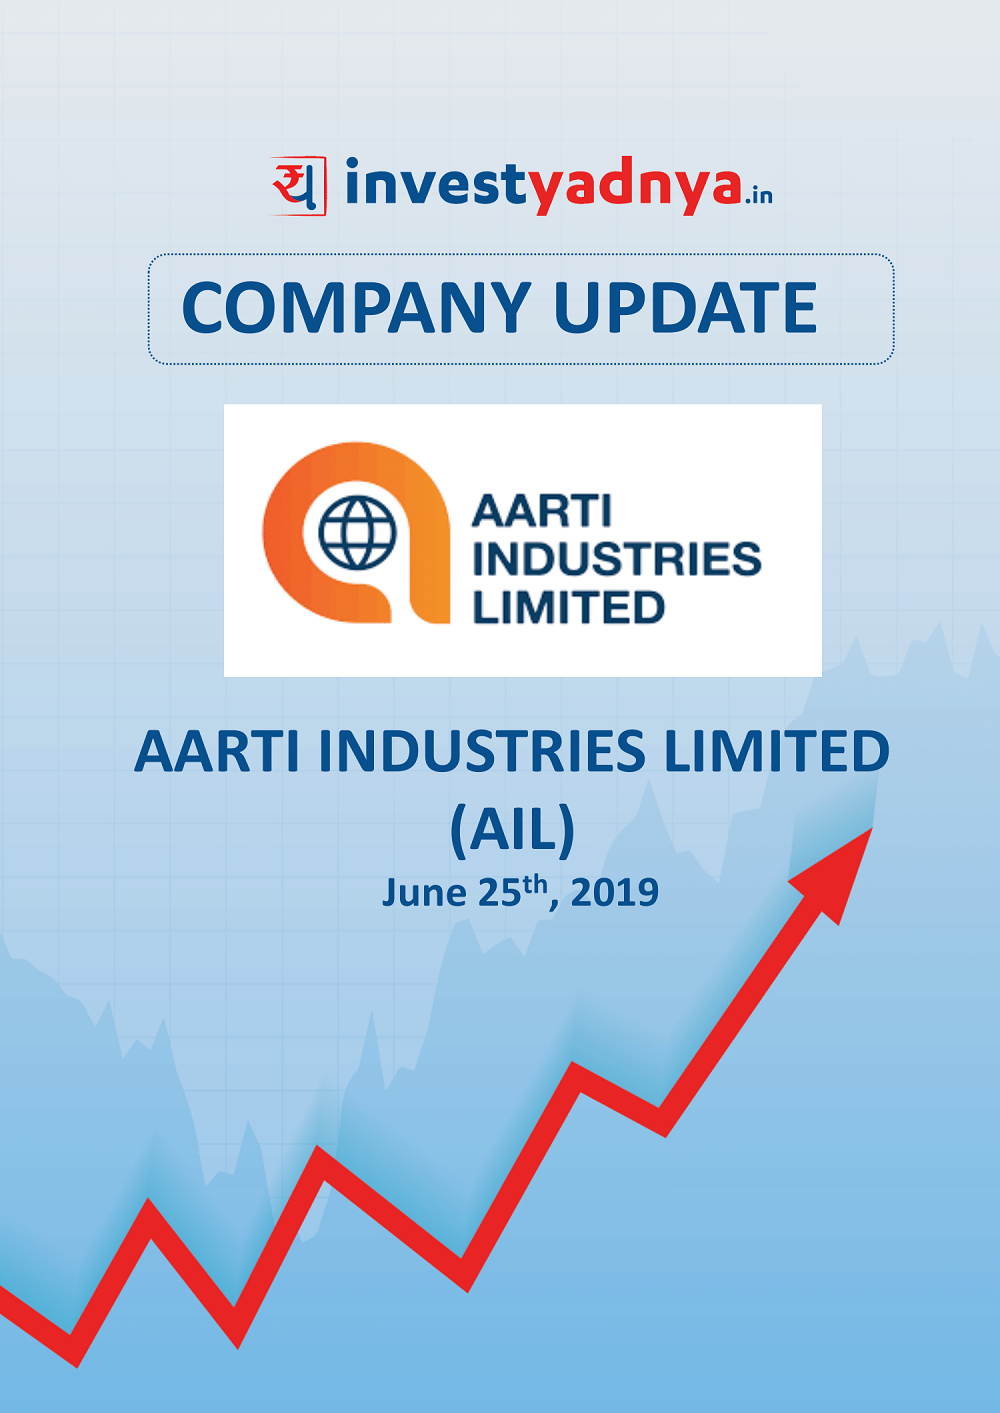 Aarti Industries Ltd. is a Short and sweet analysis of the company which contains a brief overview of the company both from a qualitative and financial perspective. Date of update- 30th June 2019.